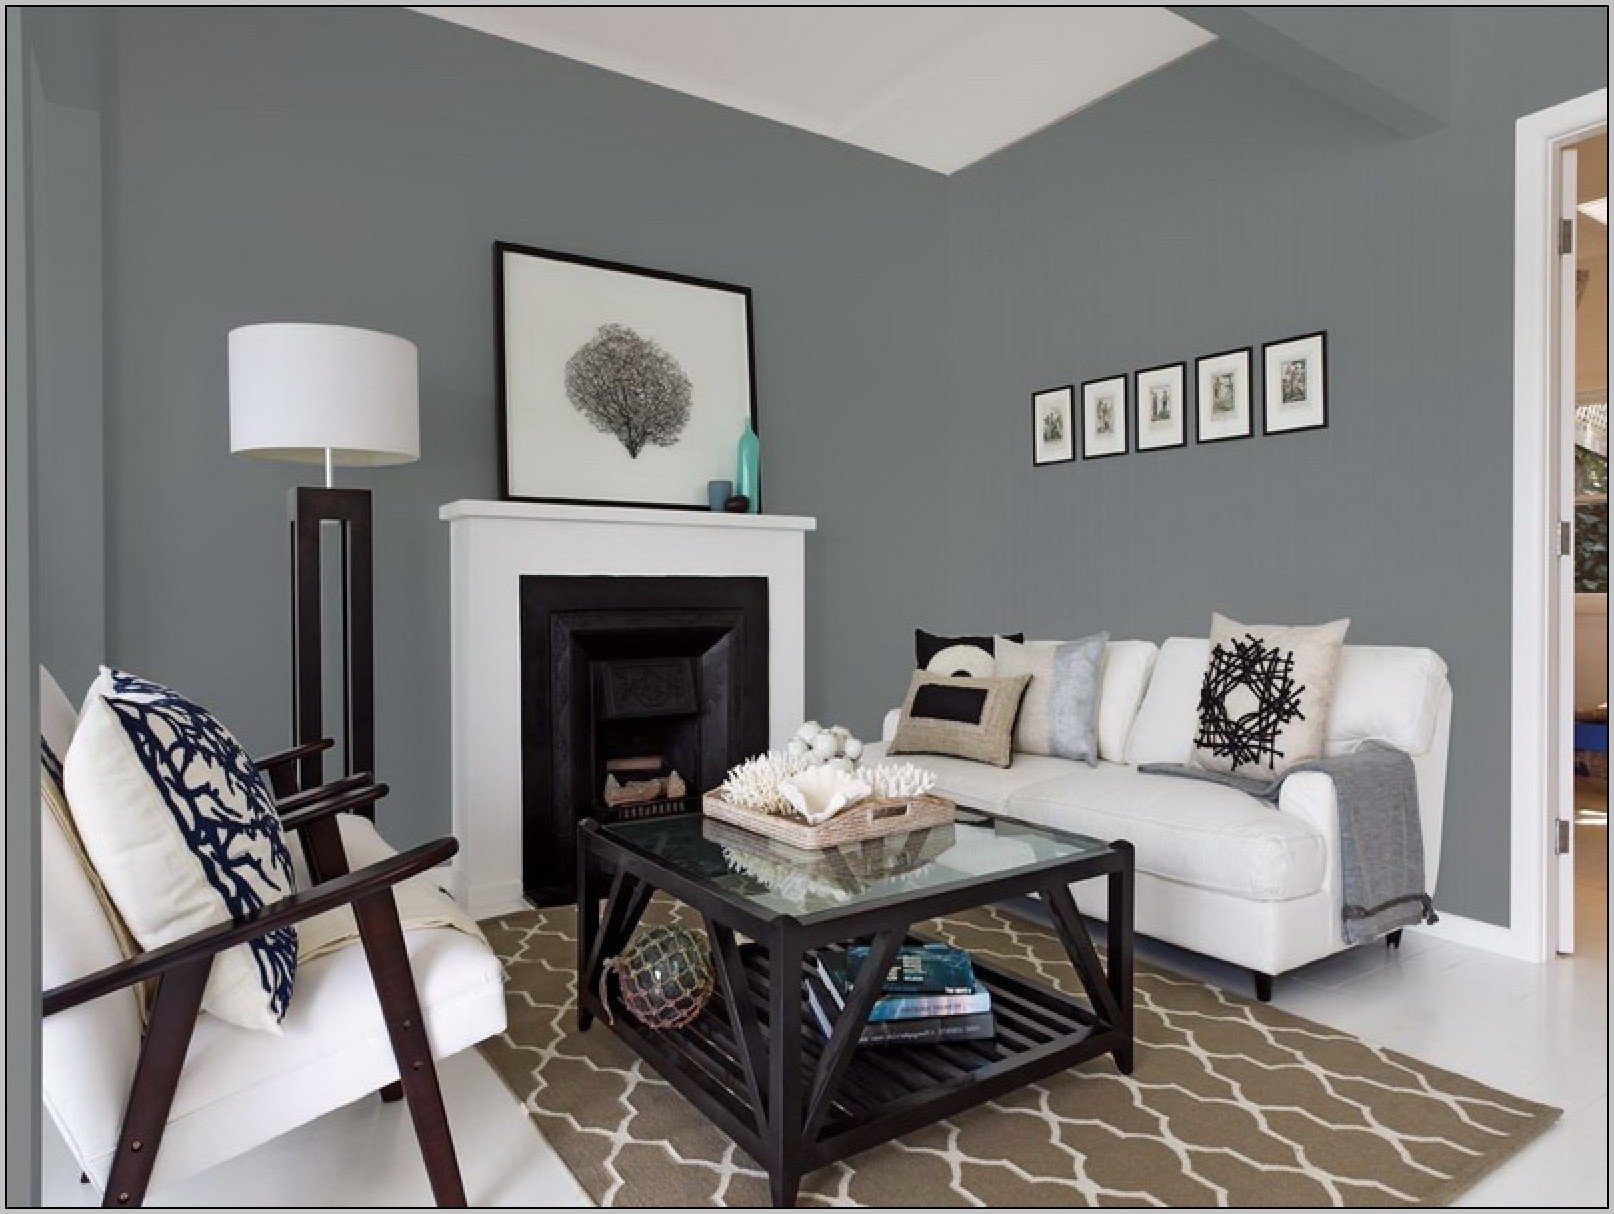 10 Spectacular Living Room Paint Color Ideas best living room painting including good images small paint colors 2020